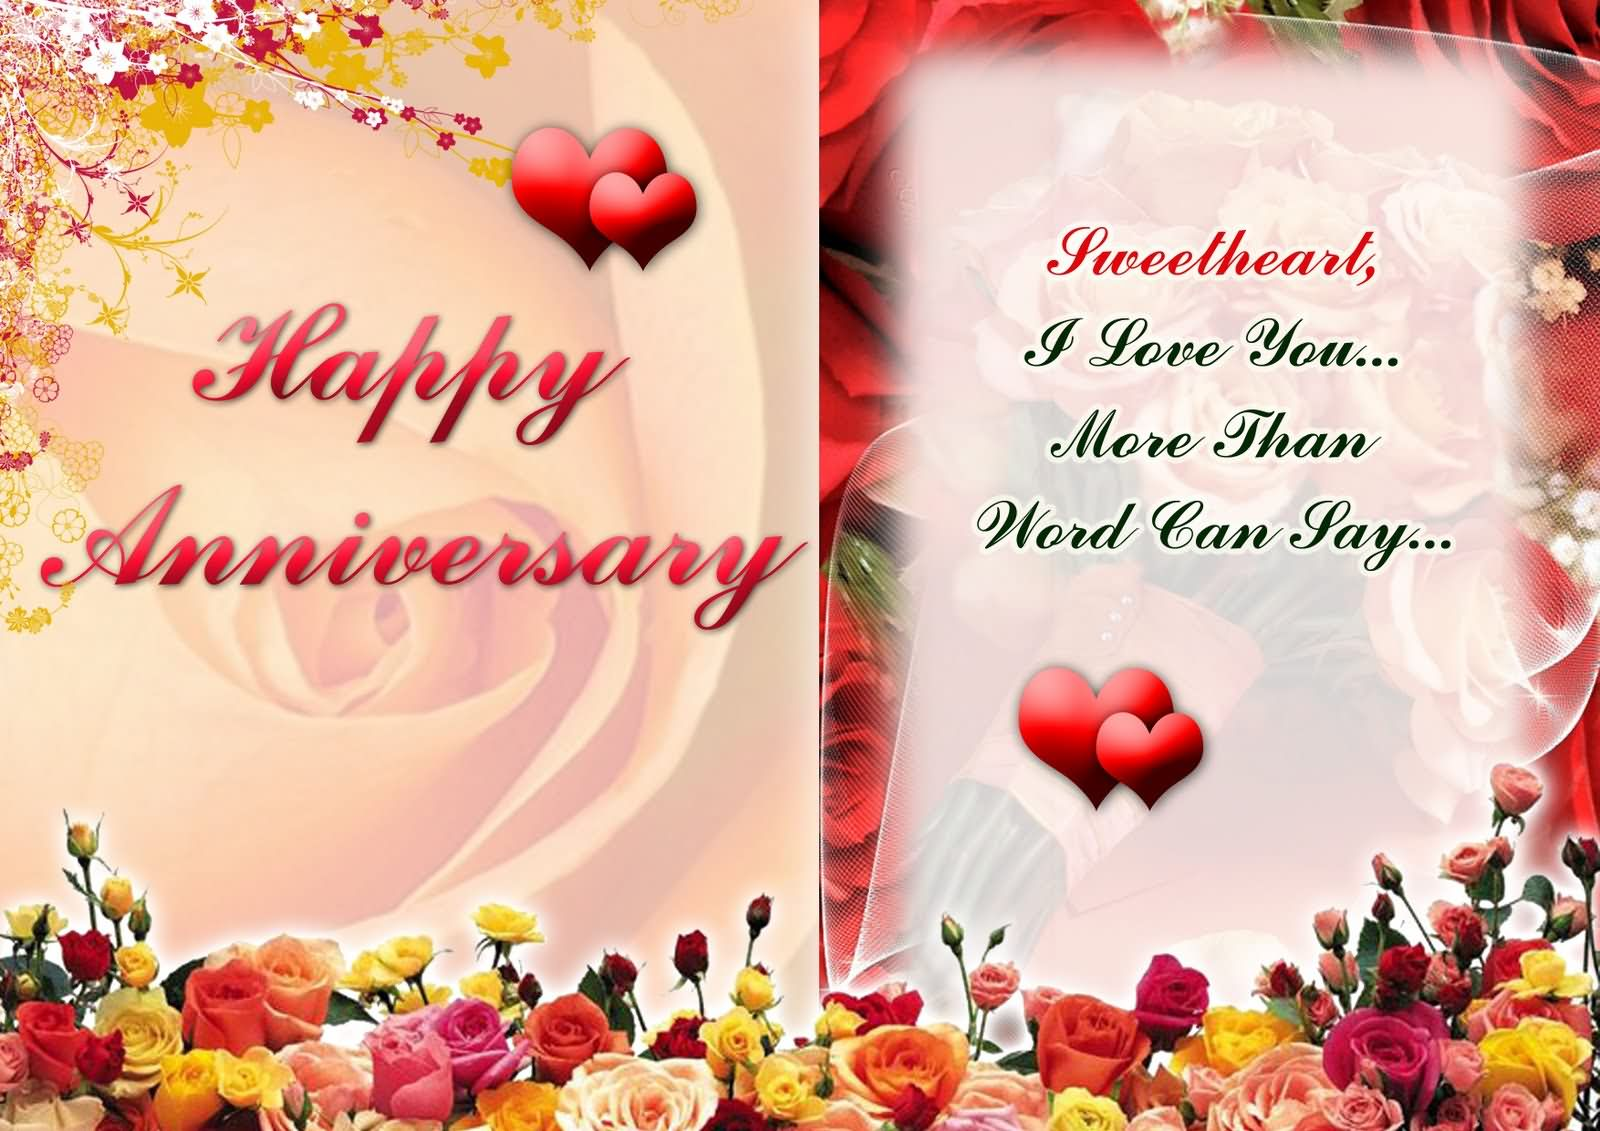 words to say happy anniversary